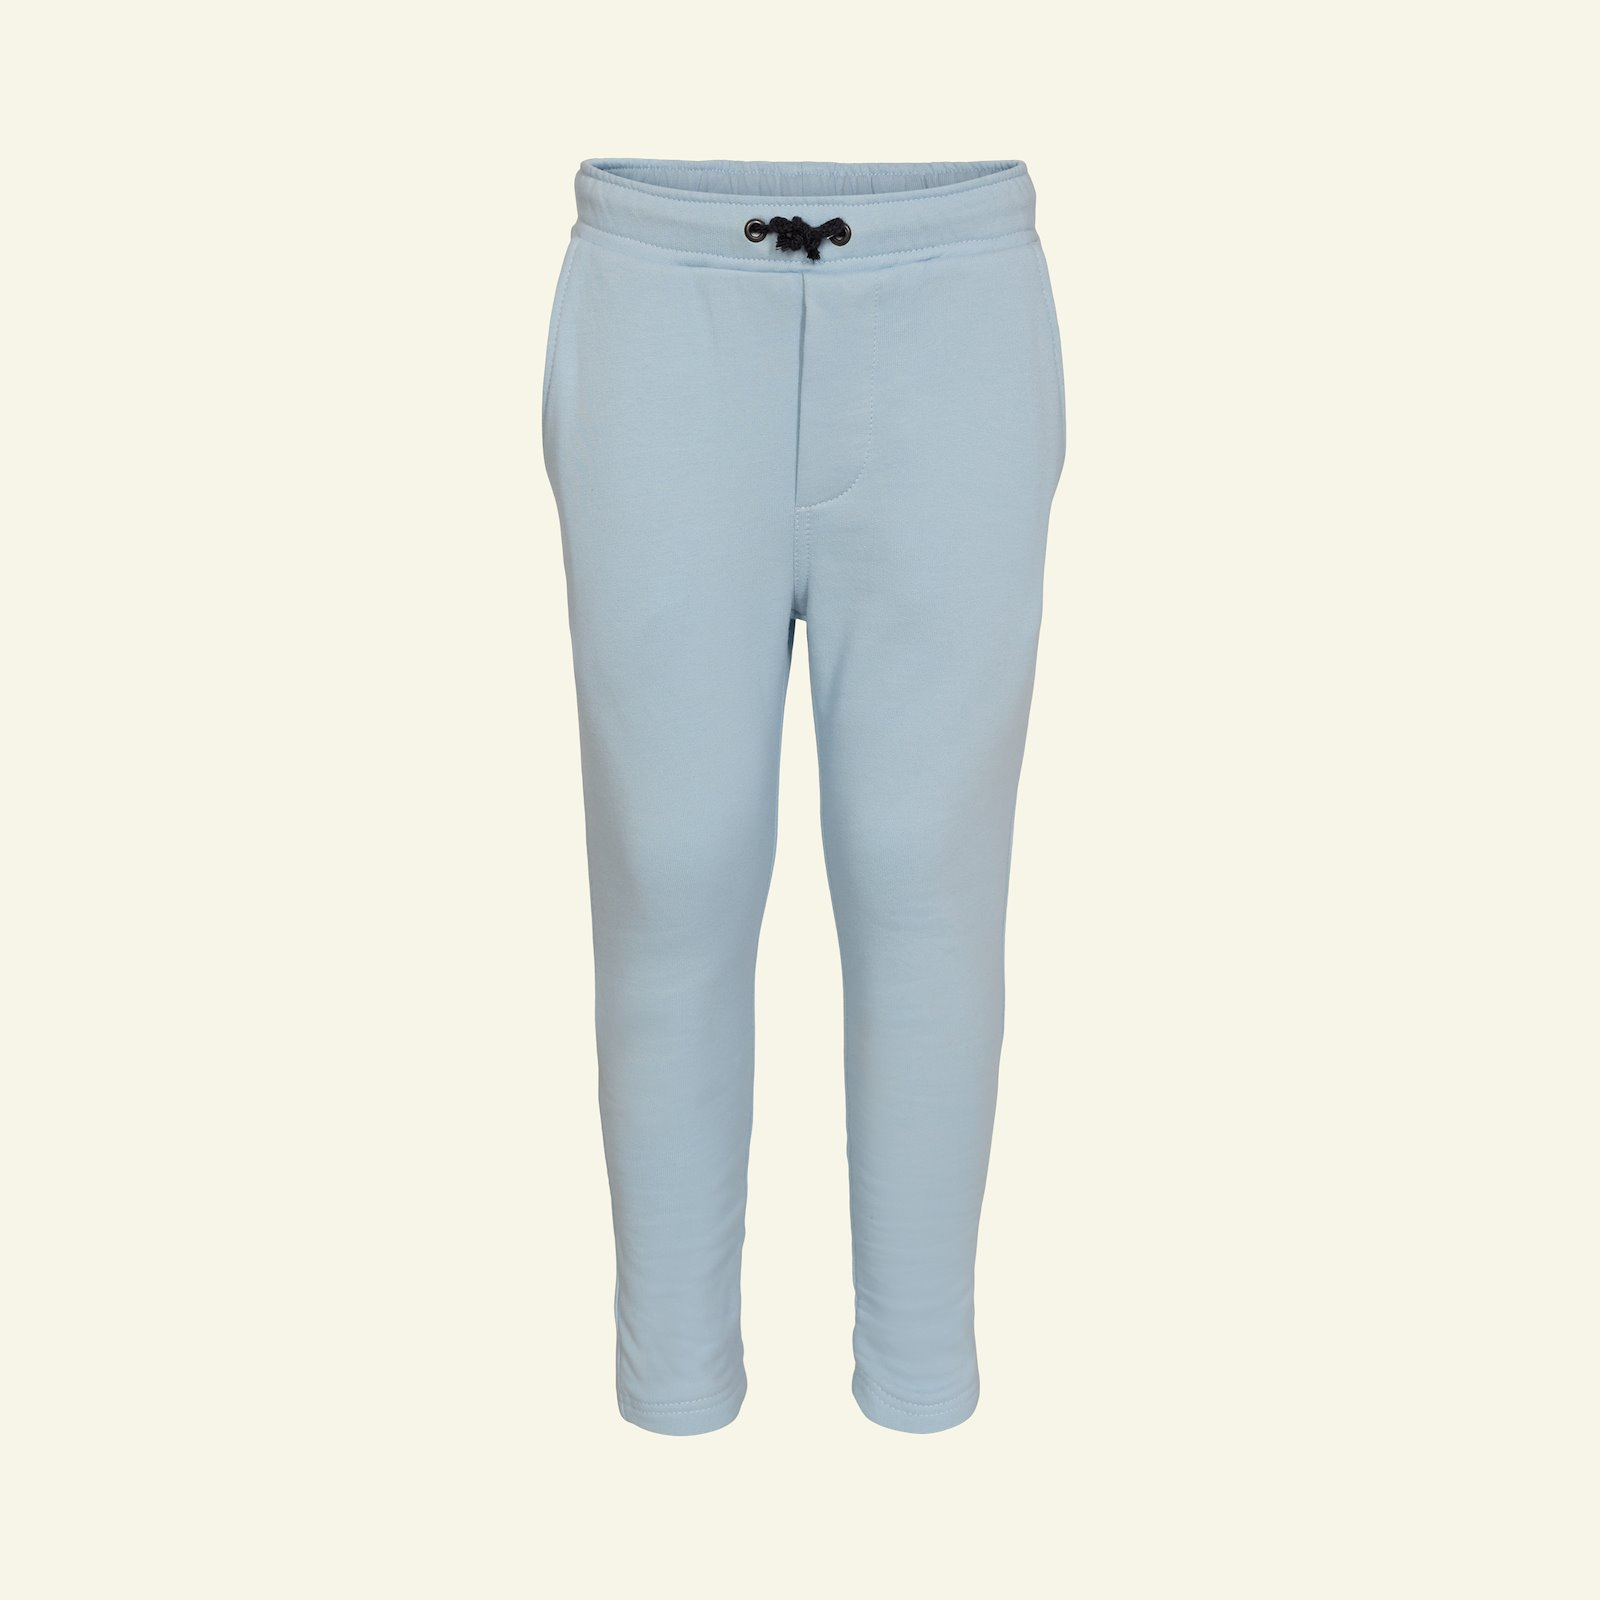 Trousers, 104/4y p60035_211777_sskit